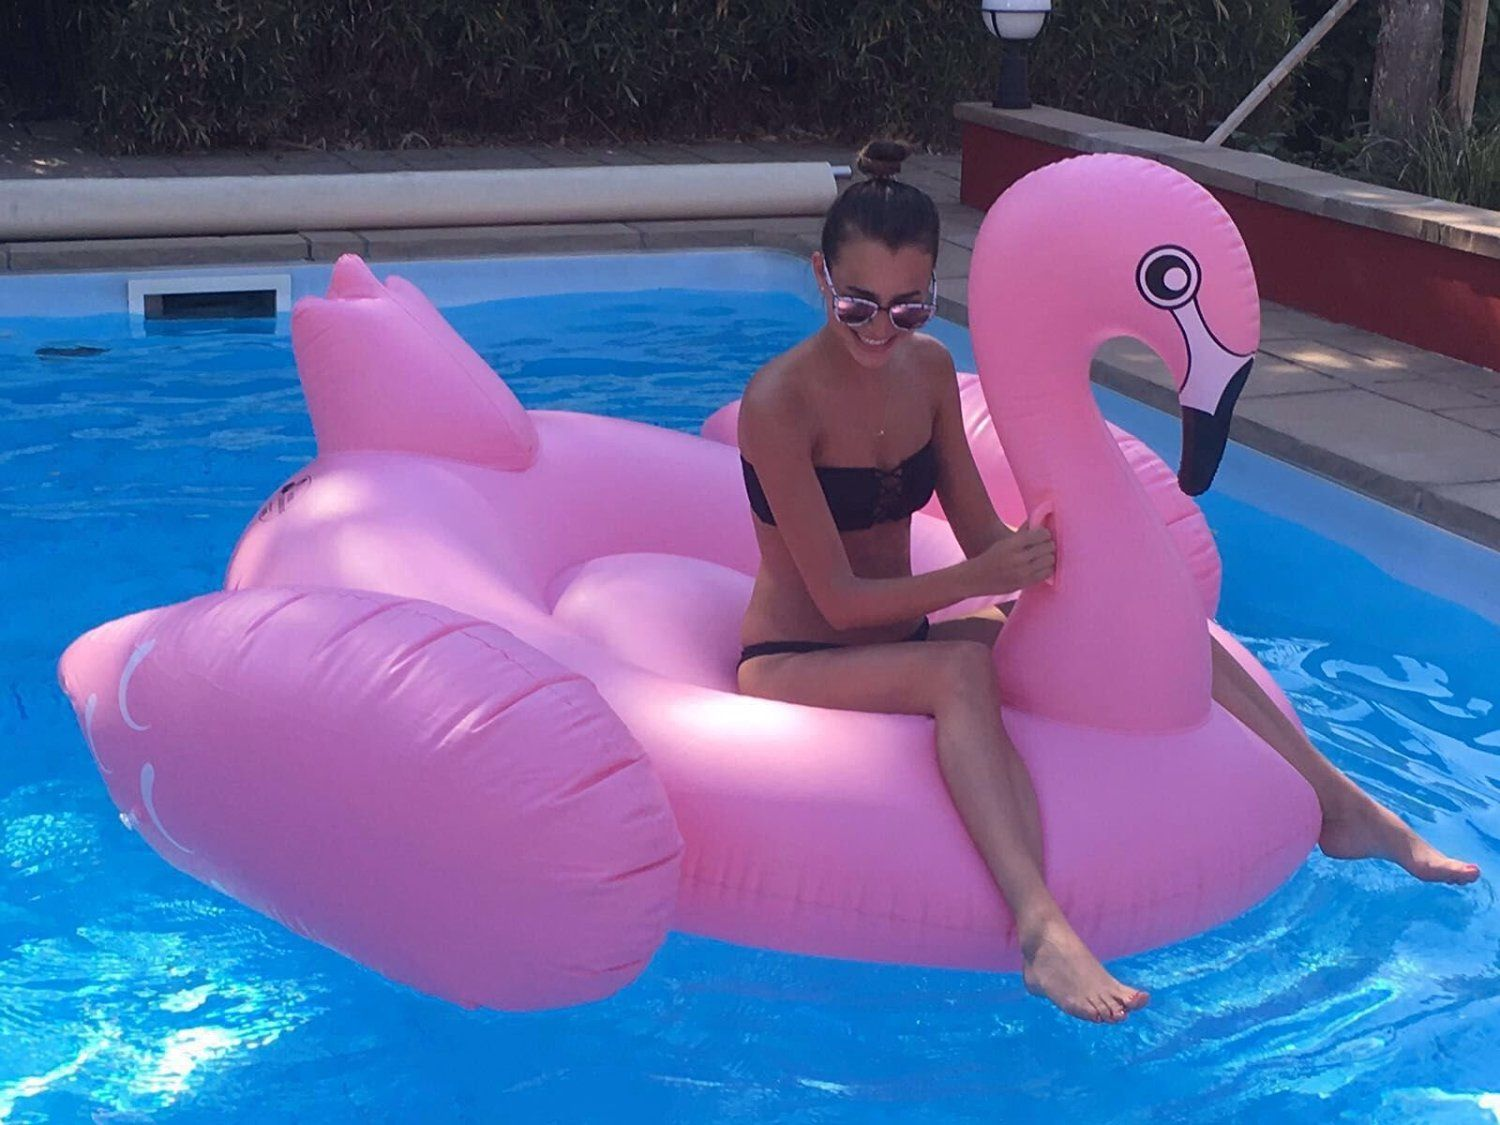 der xxl flamingo ist ein echter hingucker lustige. Black Bedroom Furniture Sets. Home Design Ideas